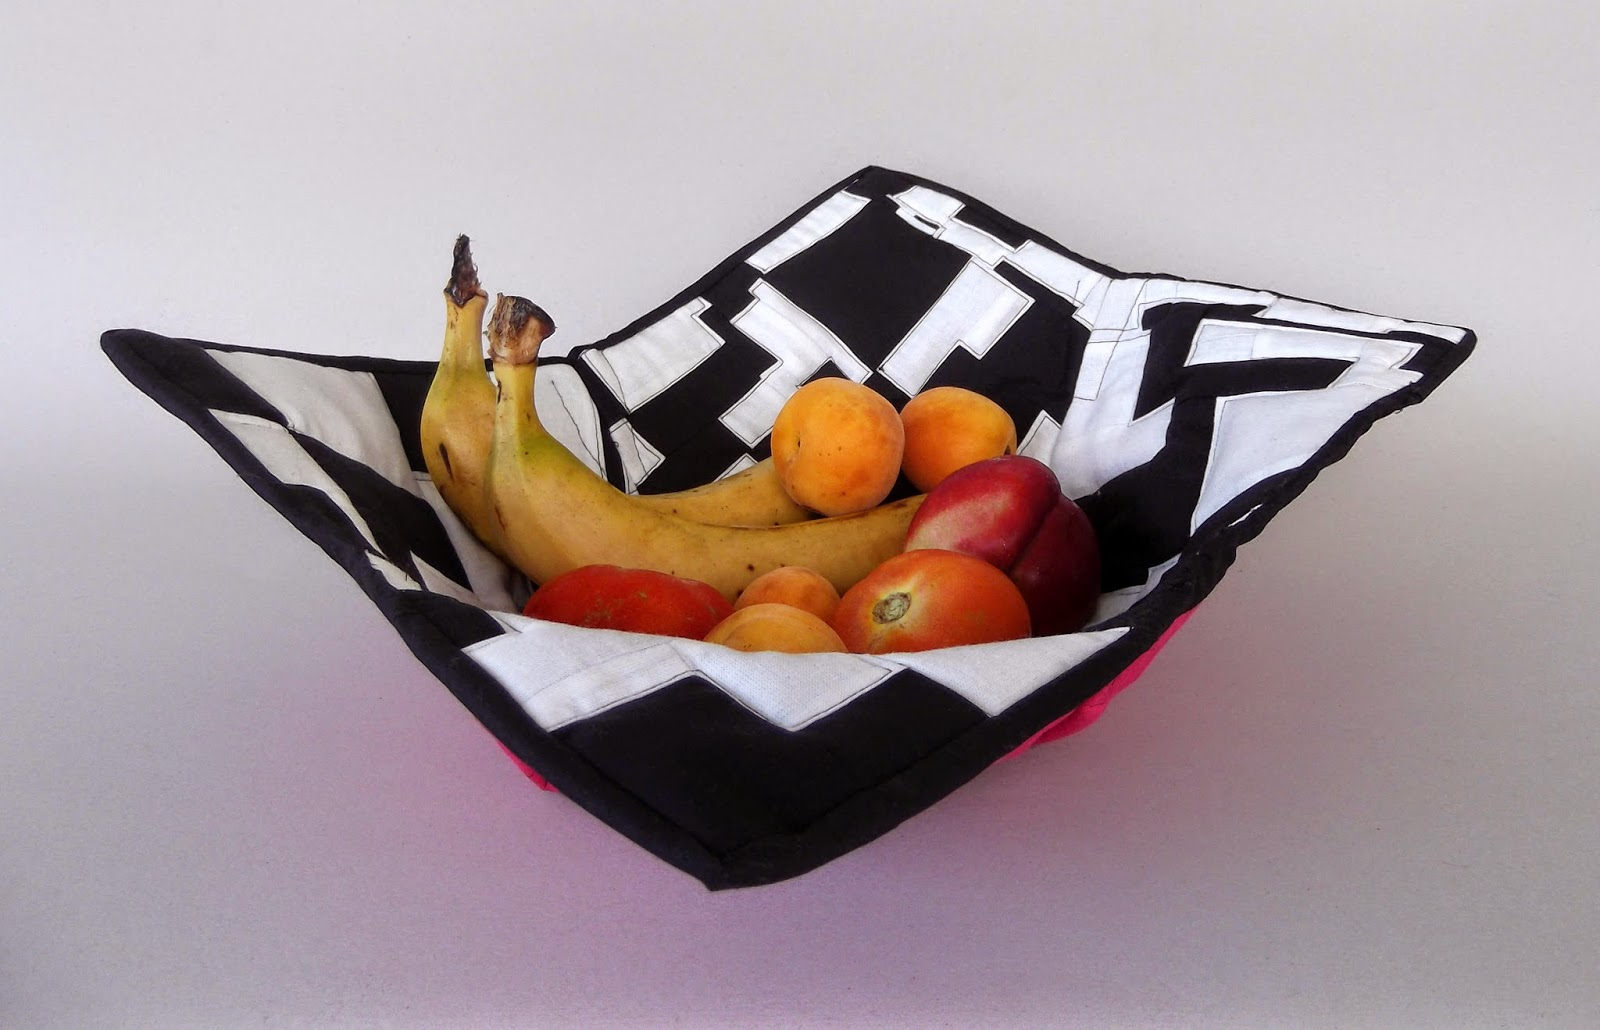 fabric basket, fabric bowl, fabric plate, fabric bread basket, textile bowl, textile basket